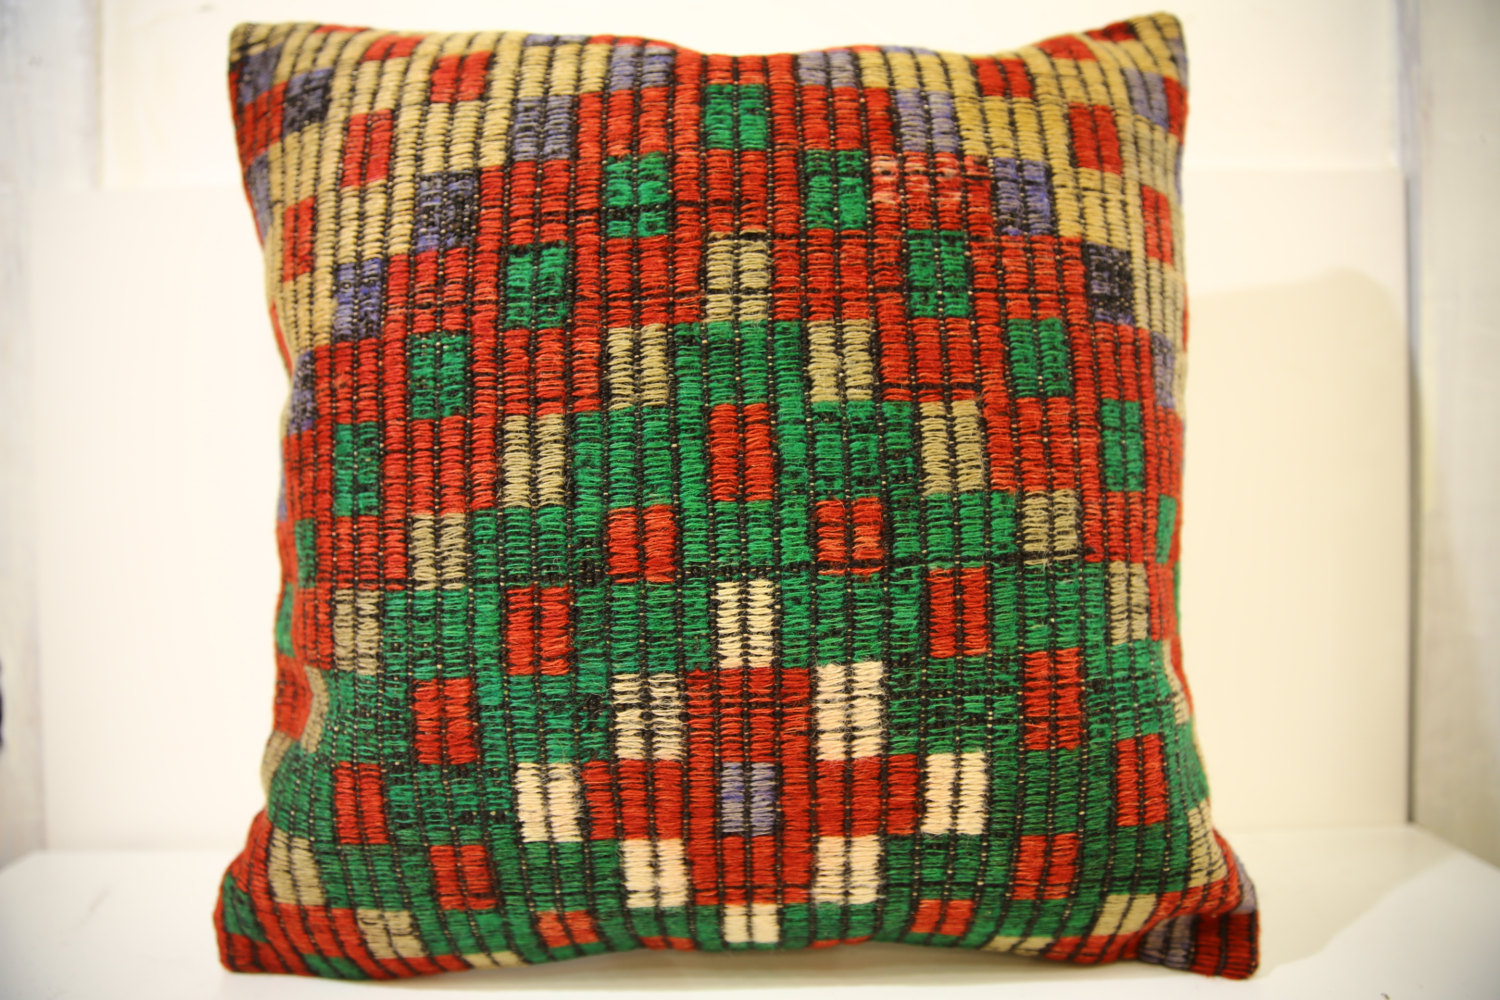 Kilim Pillows | 20x20 | Decorative Pillows | 1505 | Accent Pillows, Kilim rug